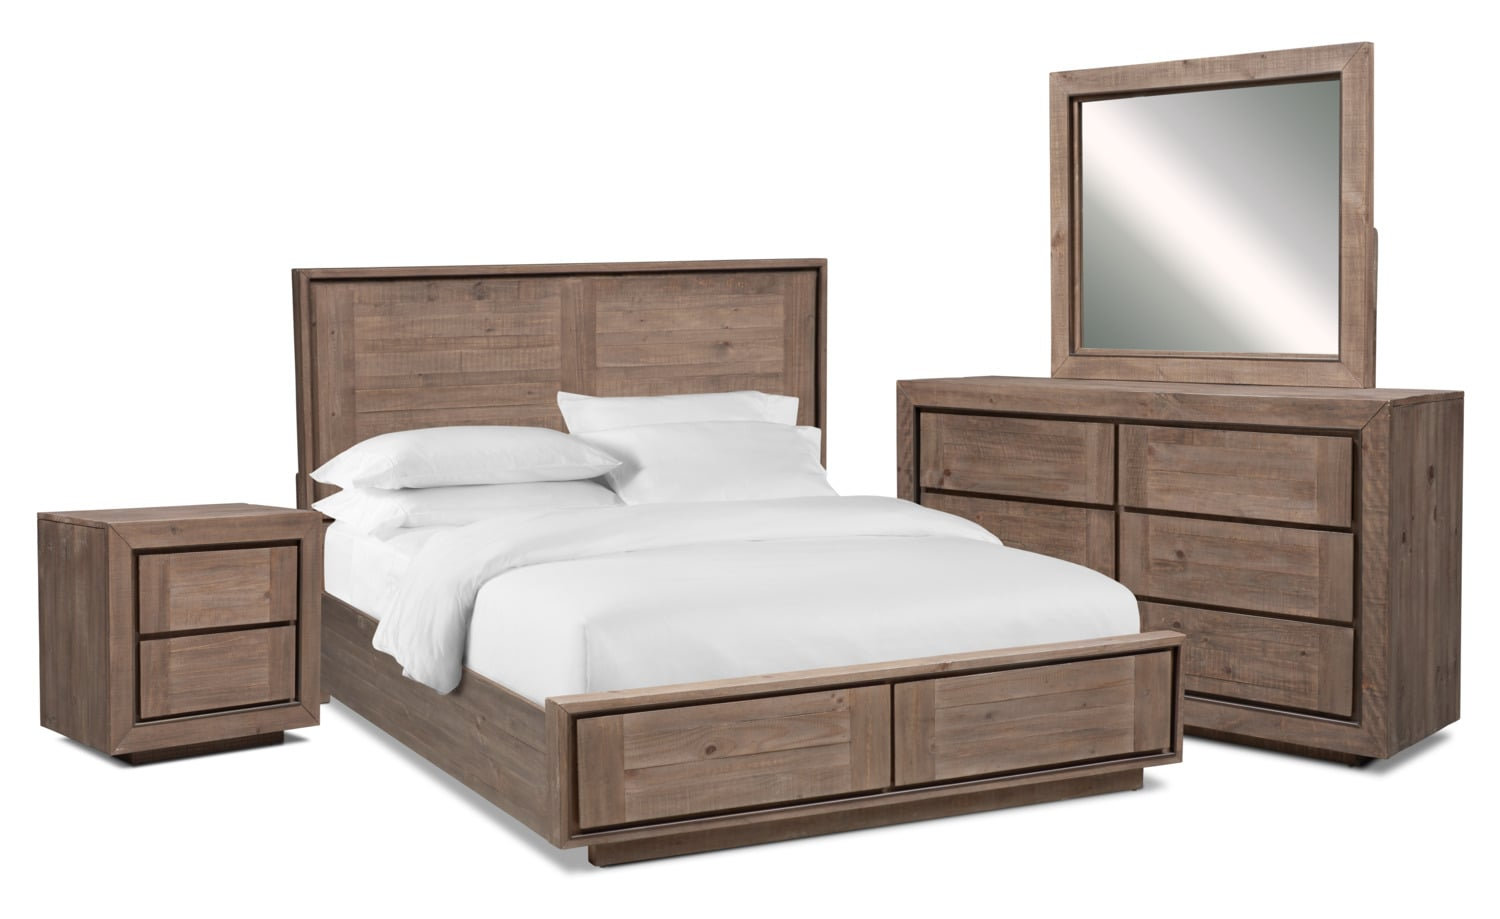 Bedroom Furniture - Henry 6-Piece Storage Bedroom Set with Nightstand, Dresser and Mirror